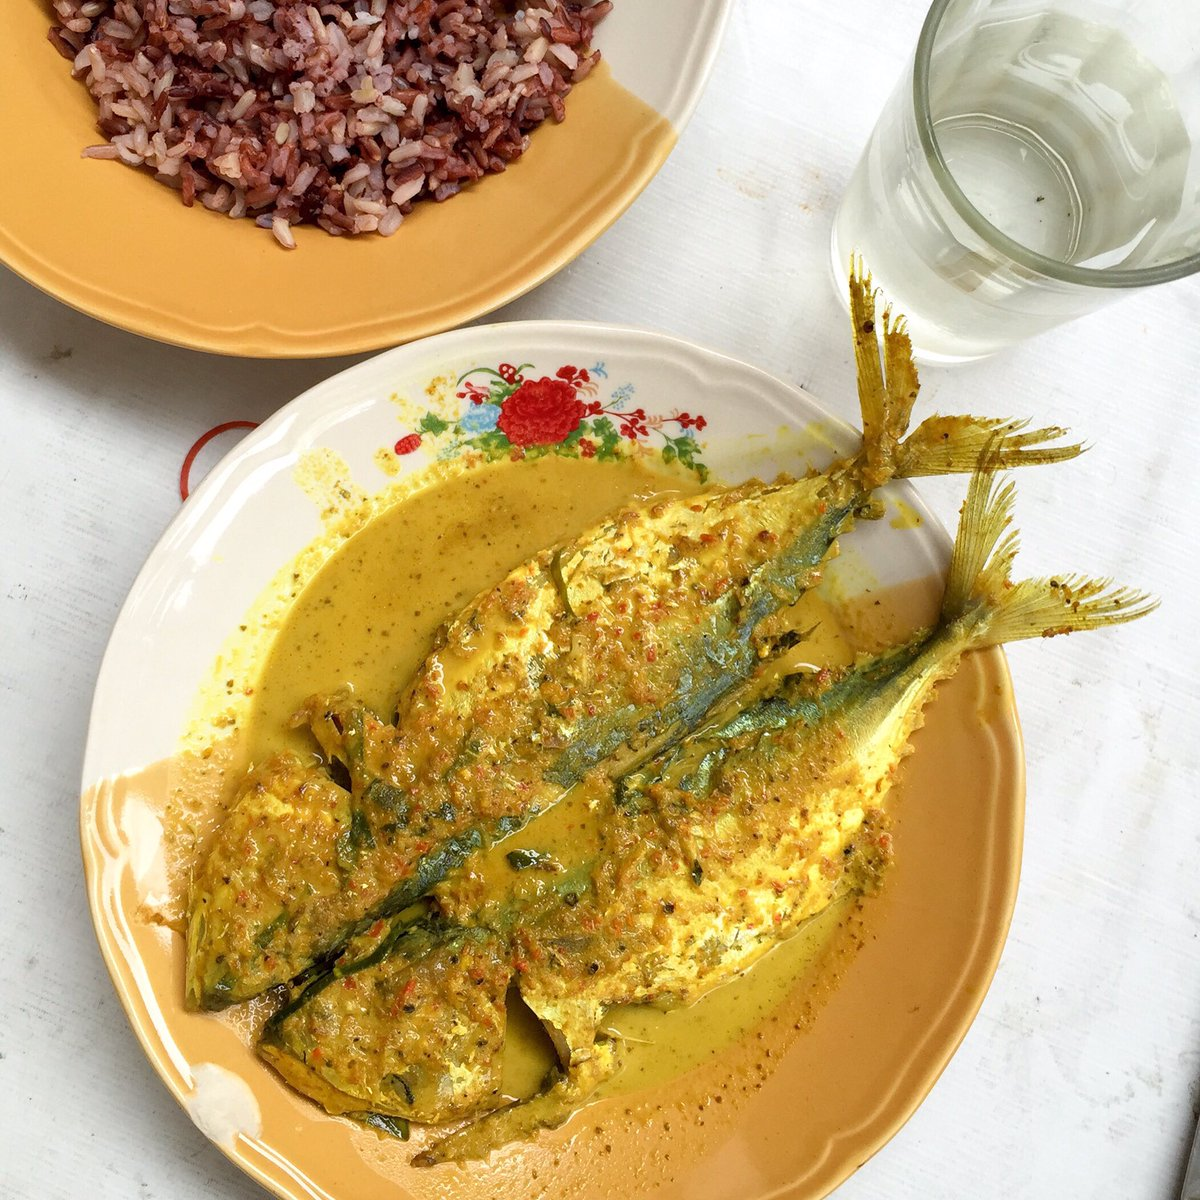 Home cooked #thaifood. This is mackerel in chuchee curry (ฉู่ฉี่ปลาทู) #lunchtime #fishcurry https://t.co/thaBxIVOdU